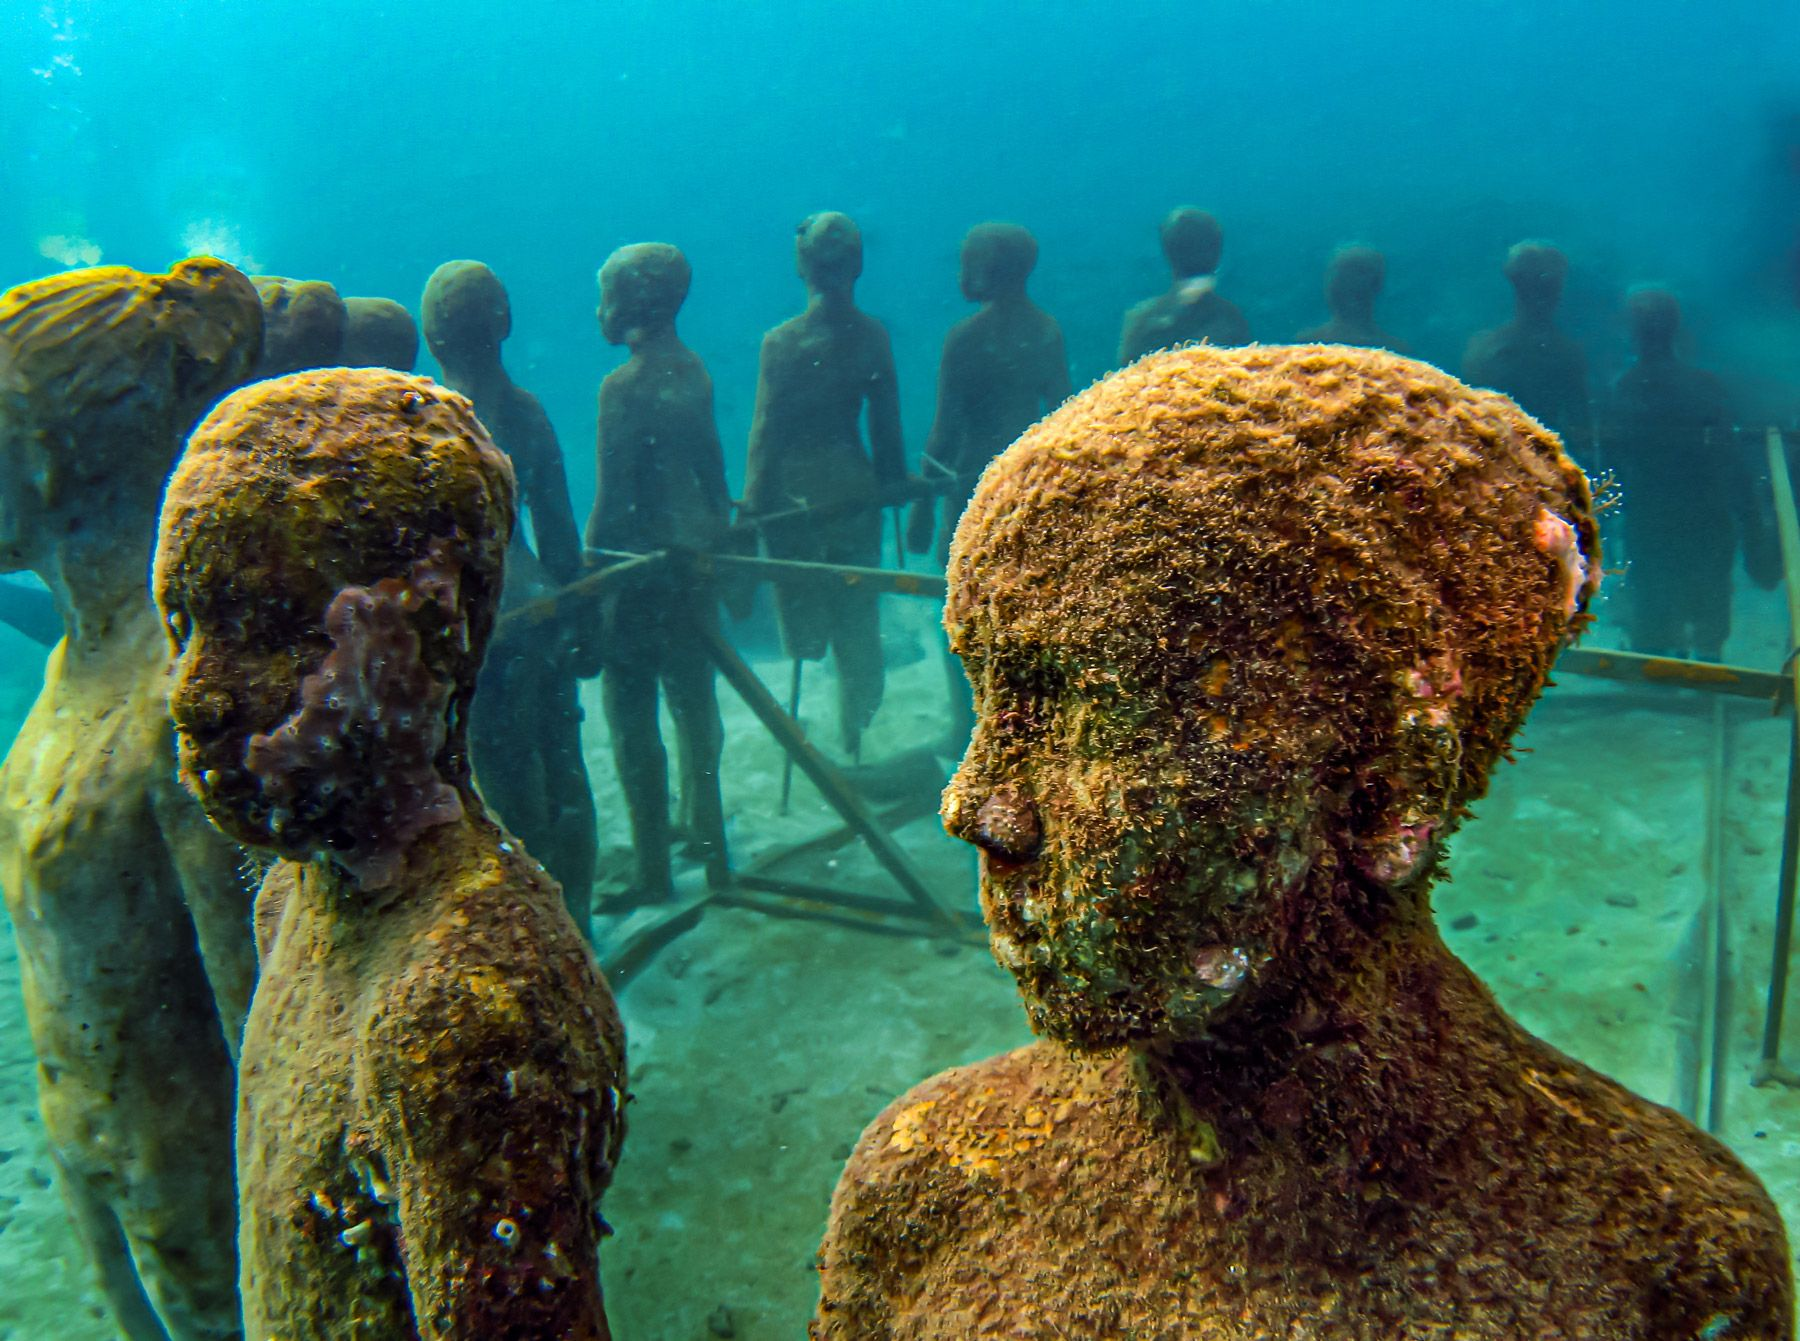 Grenada Underwater Sculpture Park children face close up